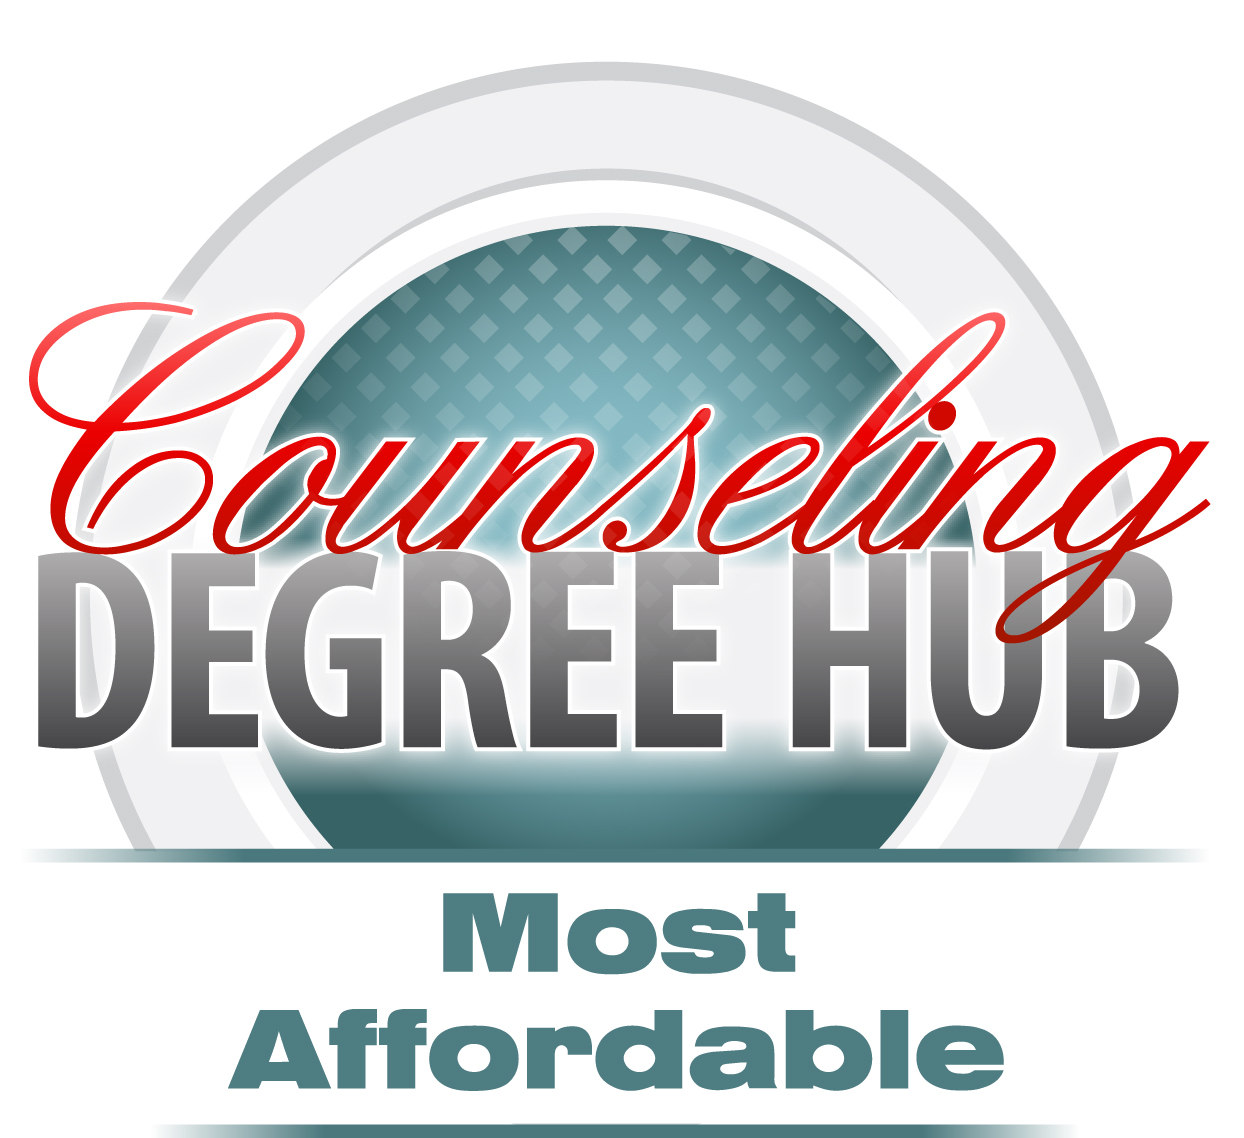 25 Most Affordable Christian Counseling Bachelors Degree Programs 2015